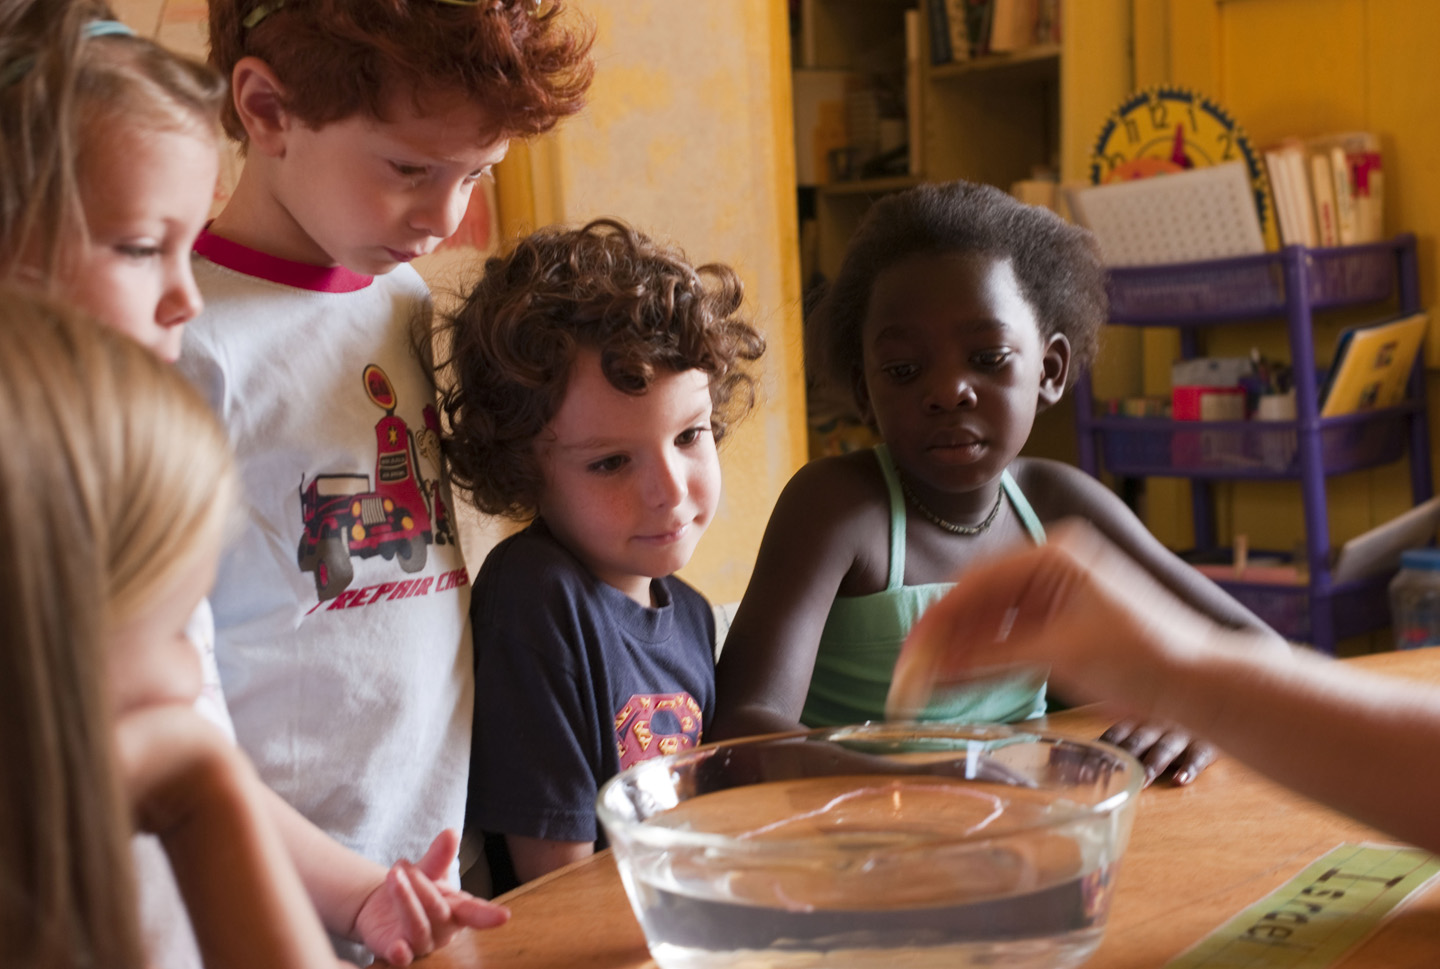 third culture kids the experience of growing up among worlds